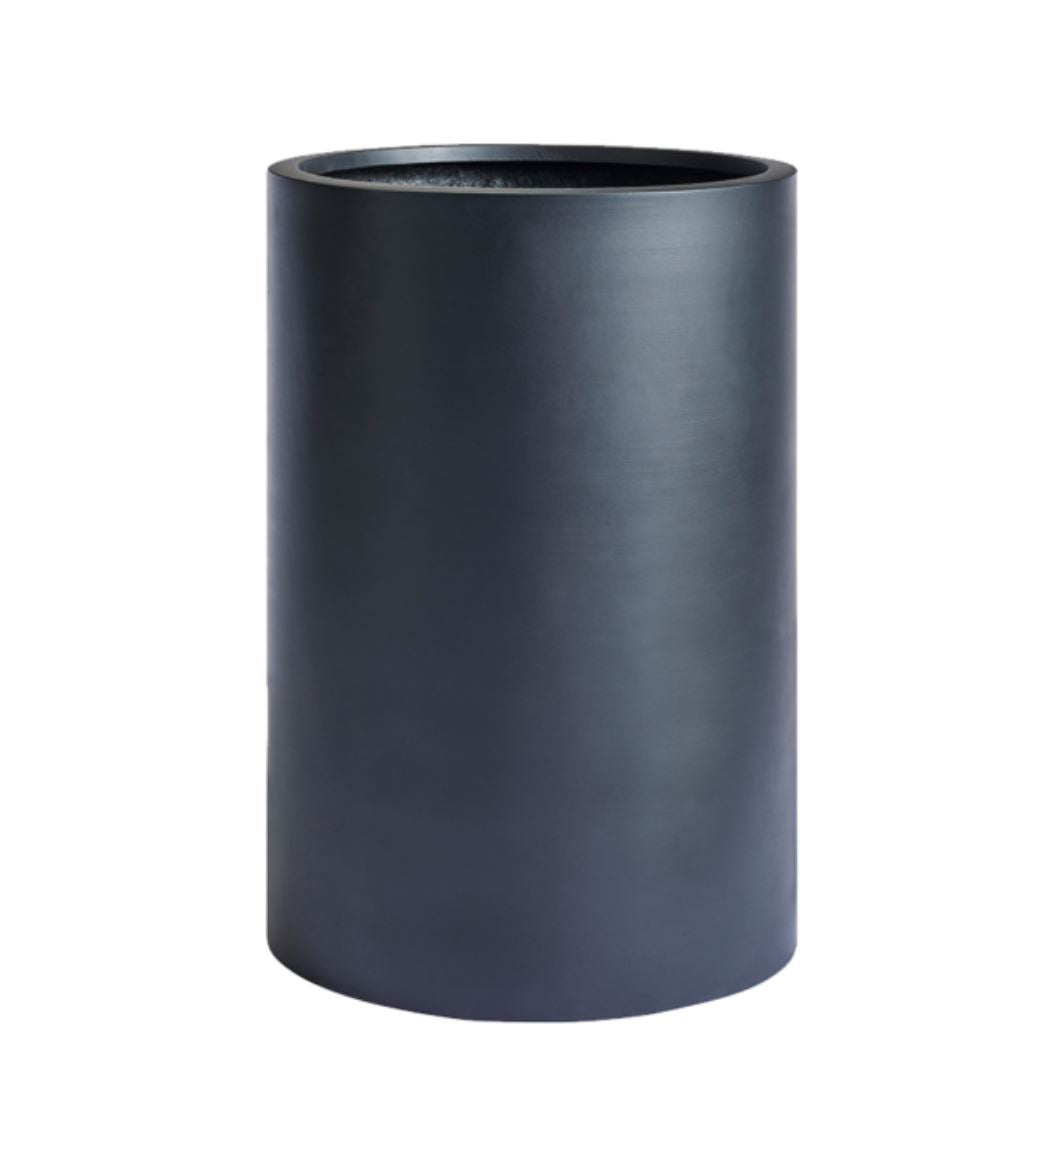 Loob Pot, (large and medium size only)